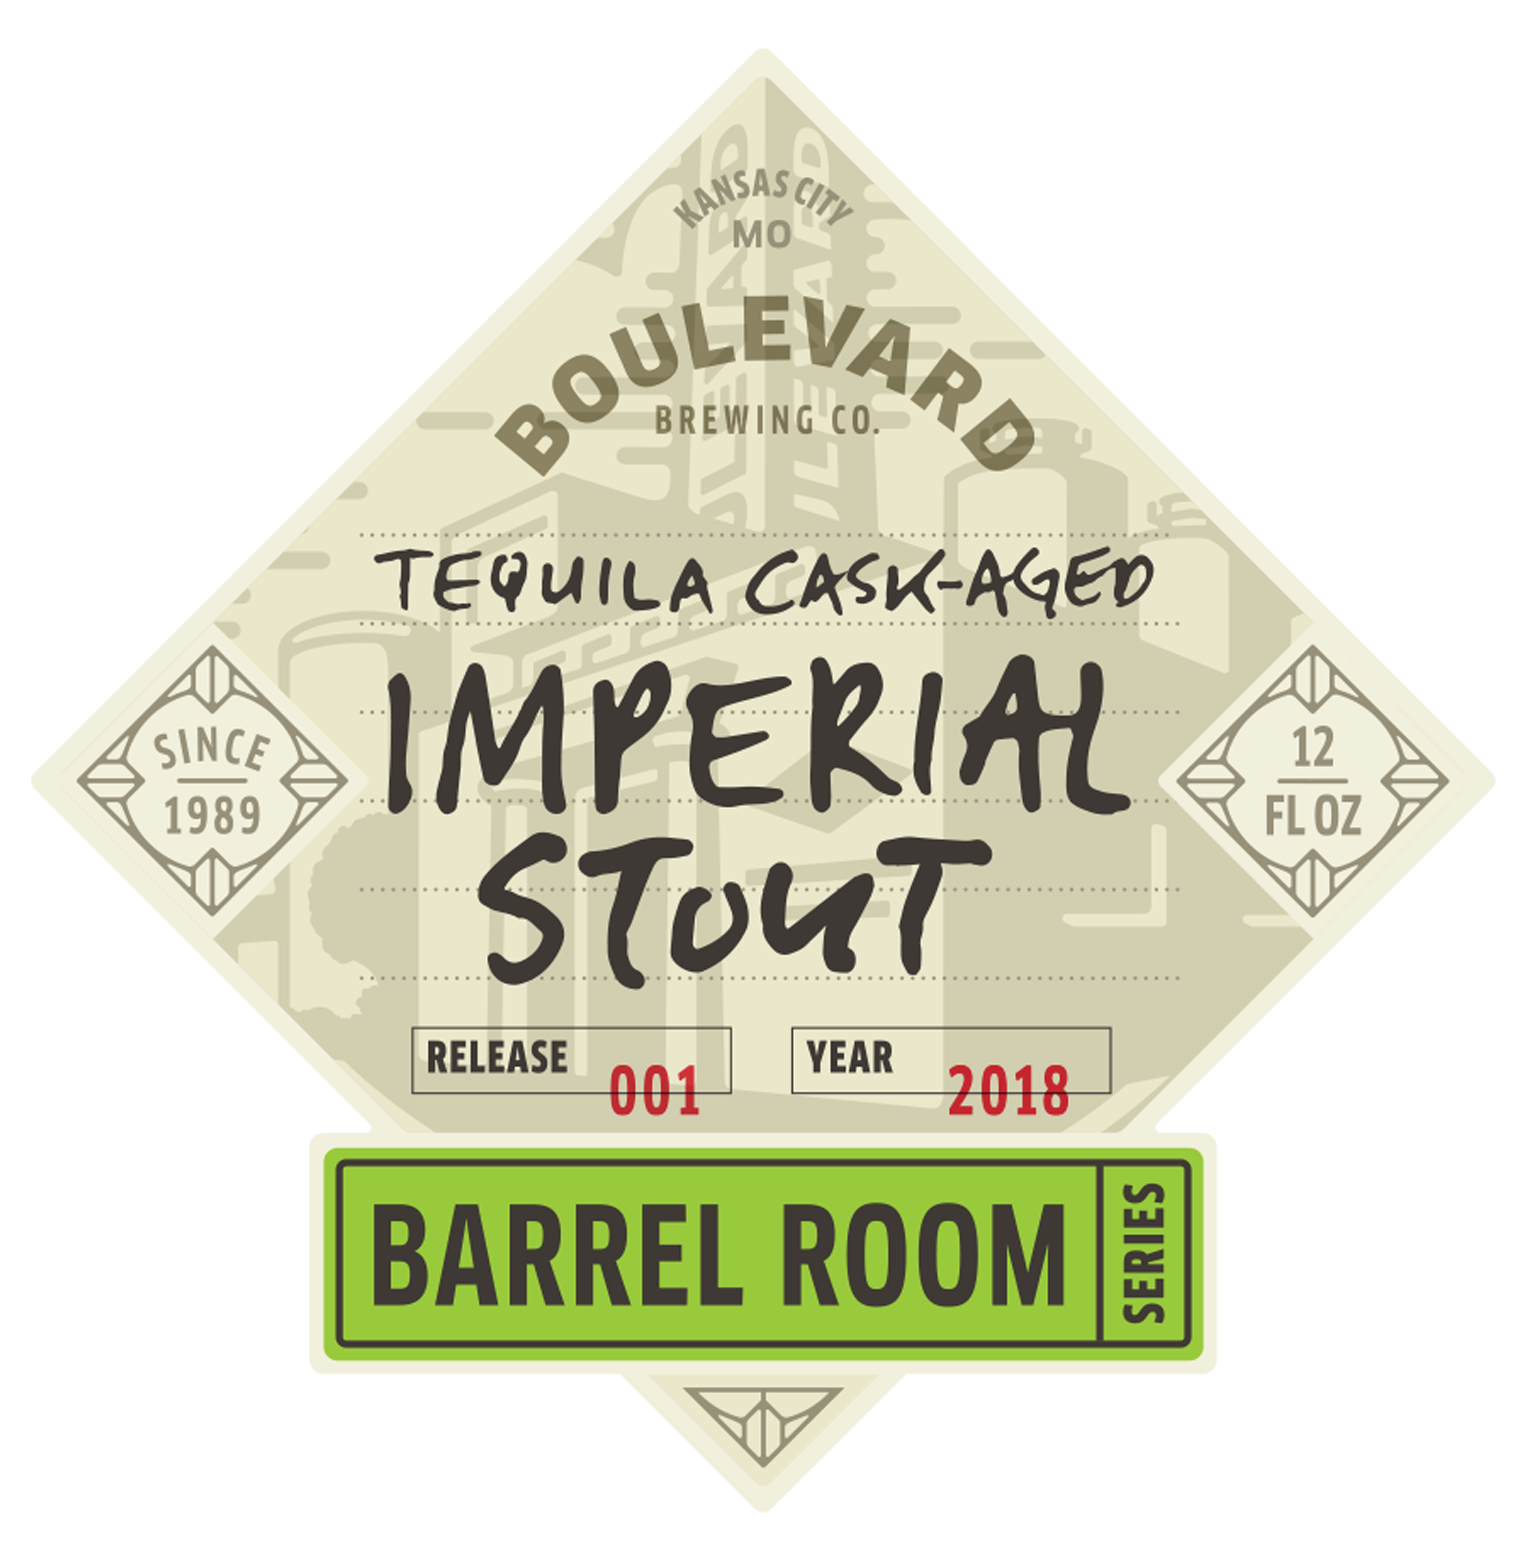 Tequila Cask-Aged Imperial Stout